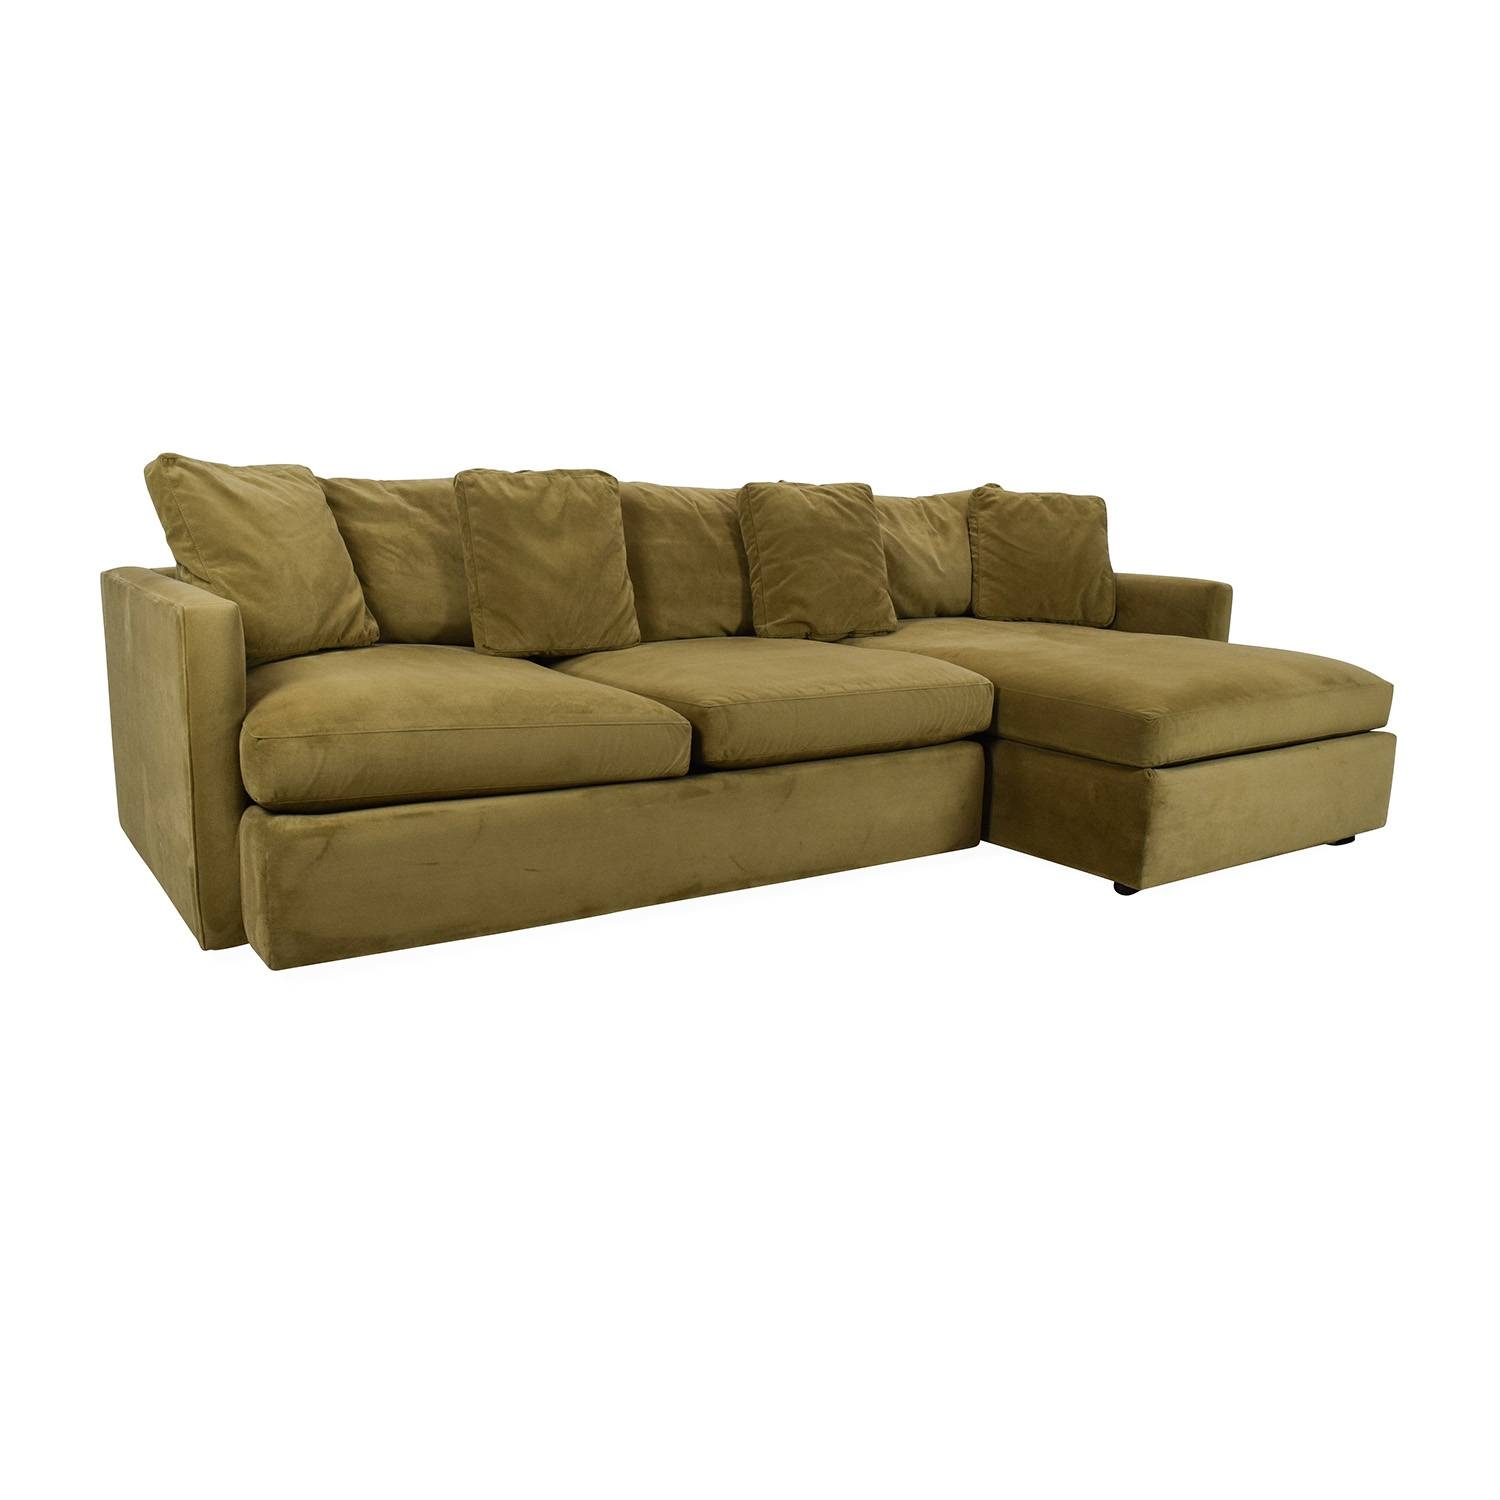 65% Off - Crate And Barrel Crate And Barrel Lounge Ii Sectional inside Crate and Barrel Sectional Sofas (Image 4 of 30)